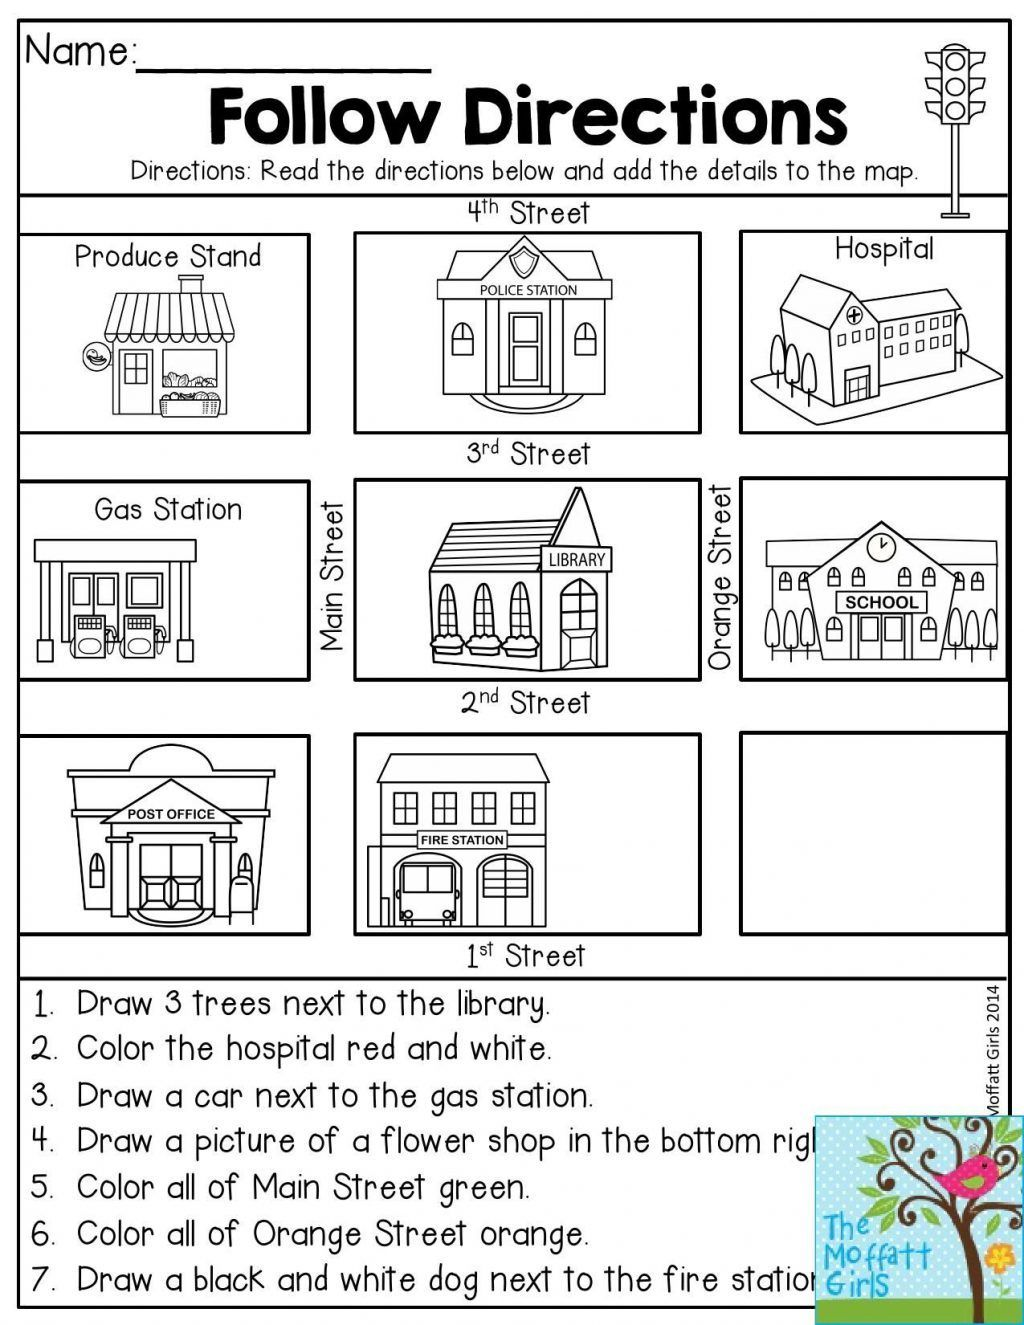 Free Printable Following Directions Worksheets 5th Grade